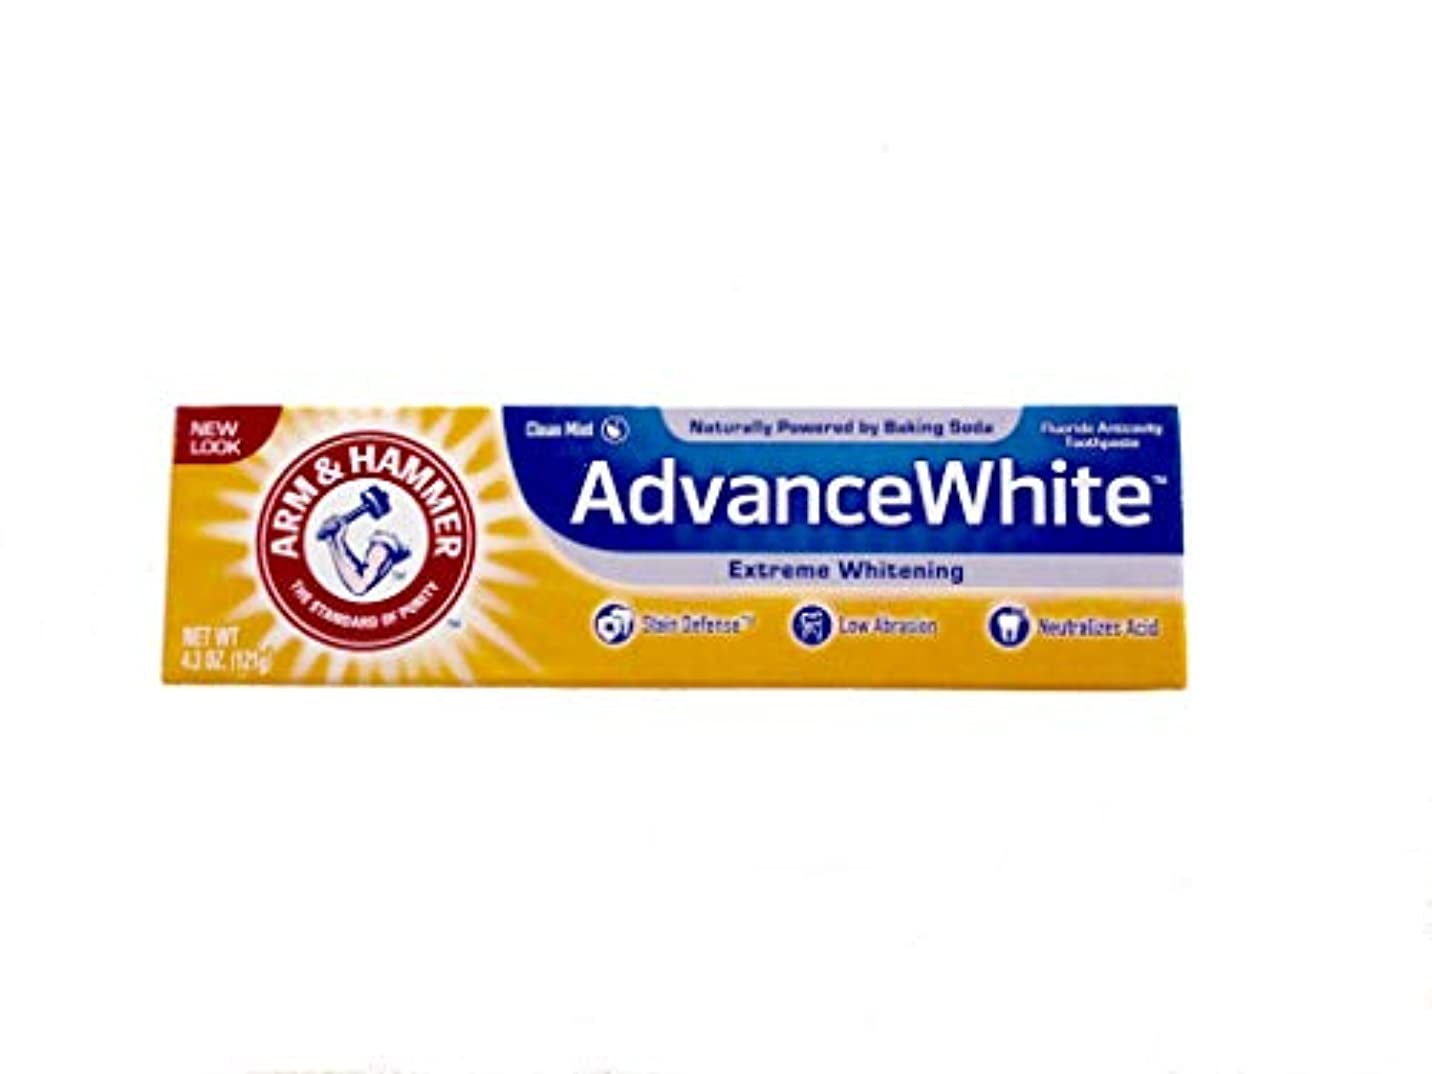 あいさつ指定するウイルスArm & Hammer Advance White Fluoride Anti-Cavity Toothpaste with Baking Soda & Peroxide - 4.3 oz by Arm & Hammer...